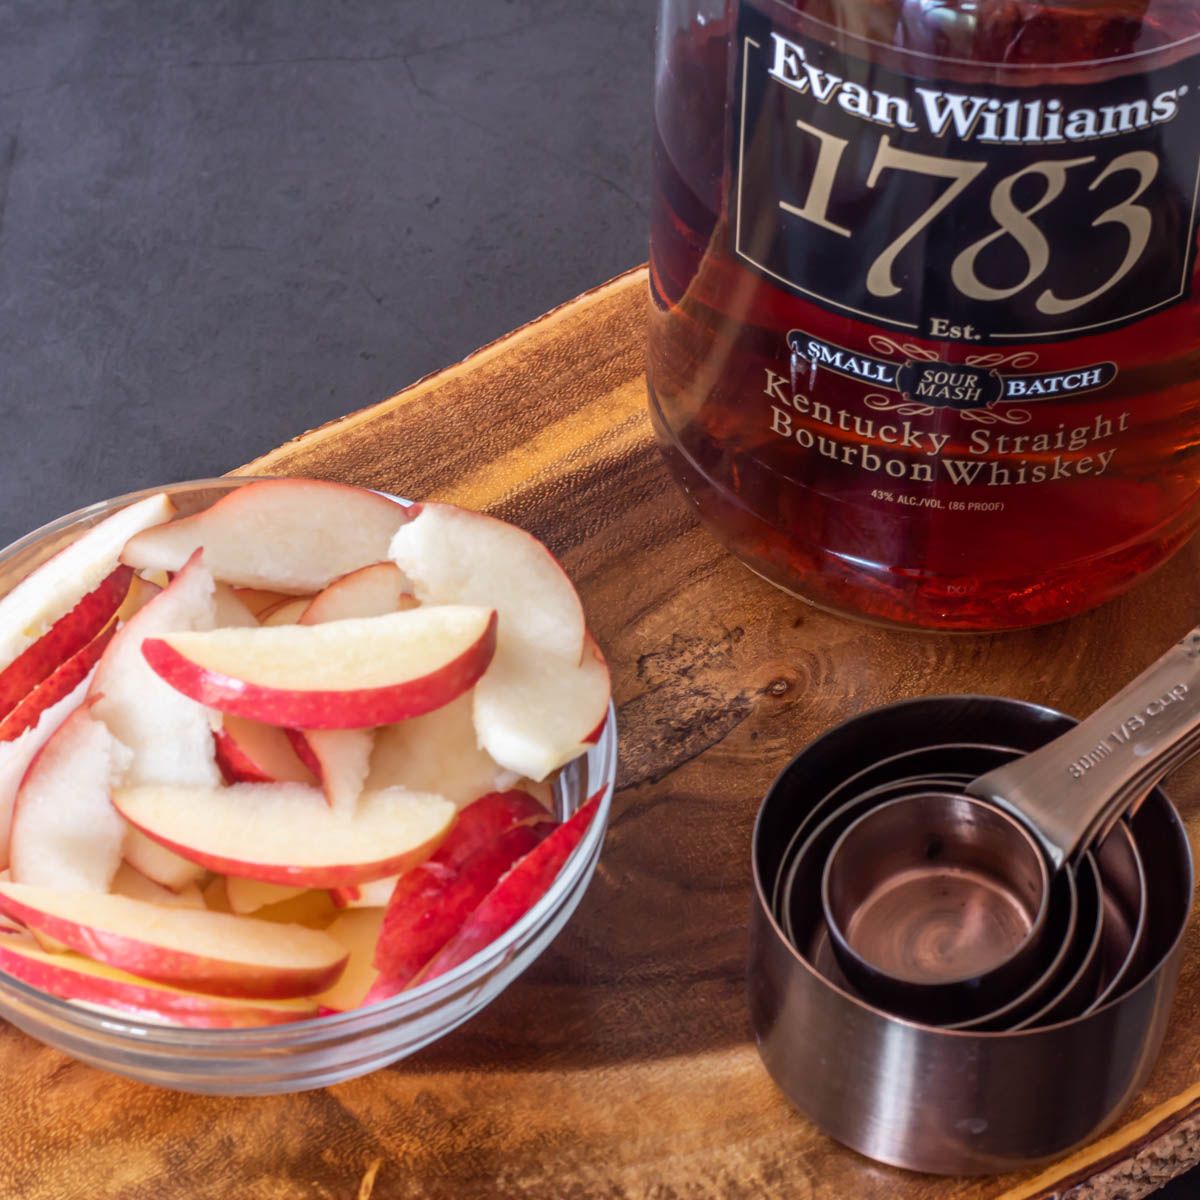 The fresh pear and apple sliced alongside a bottle of bourbon and measuring cups.